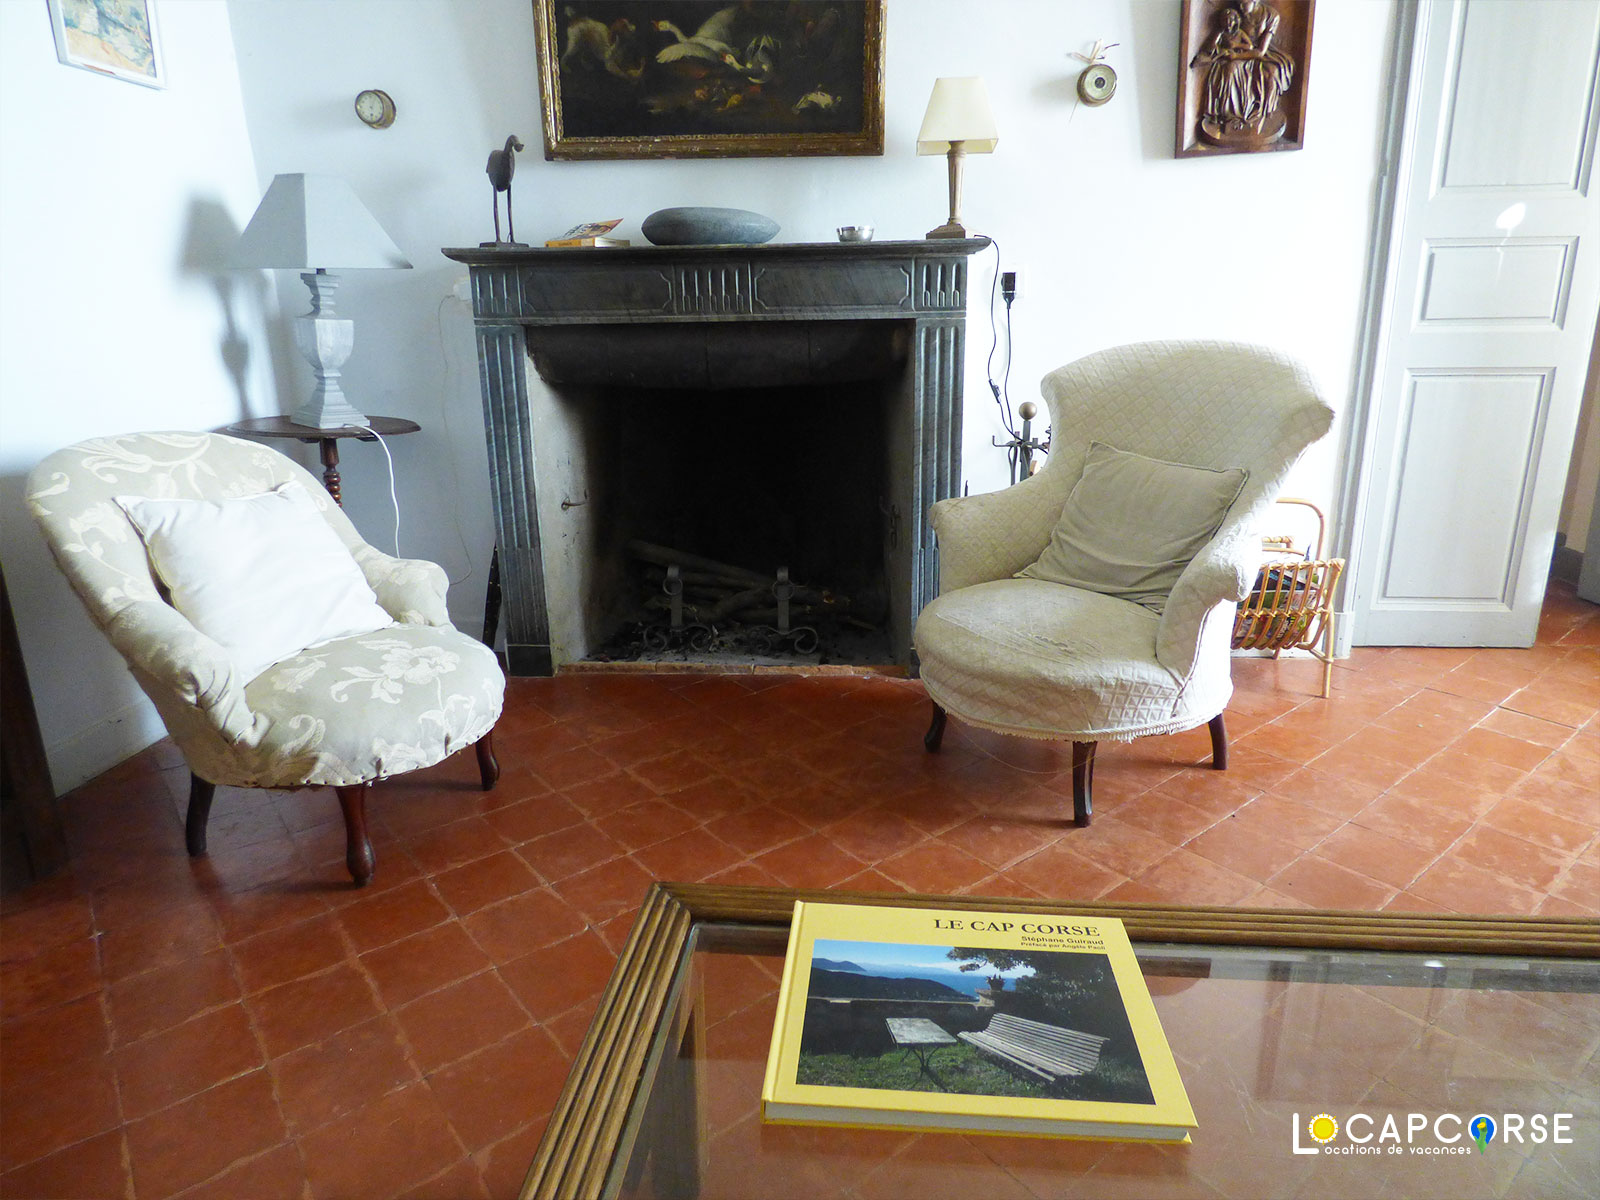 Locations Cap Corse - Another view of the living room